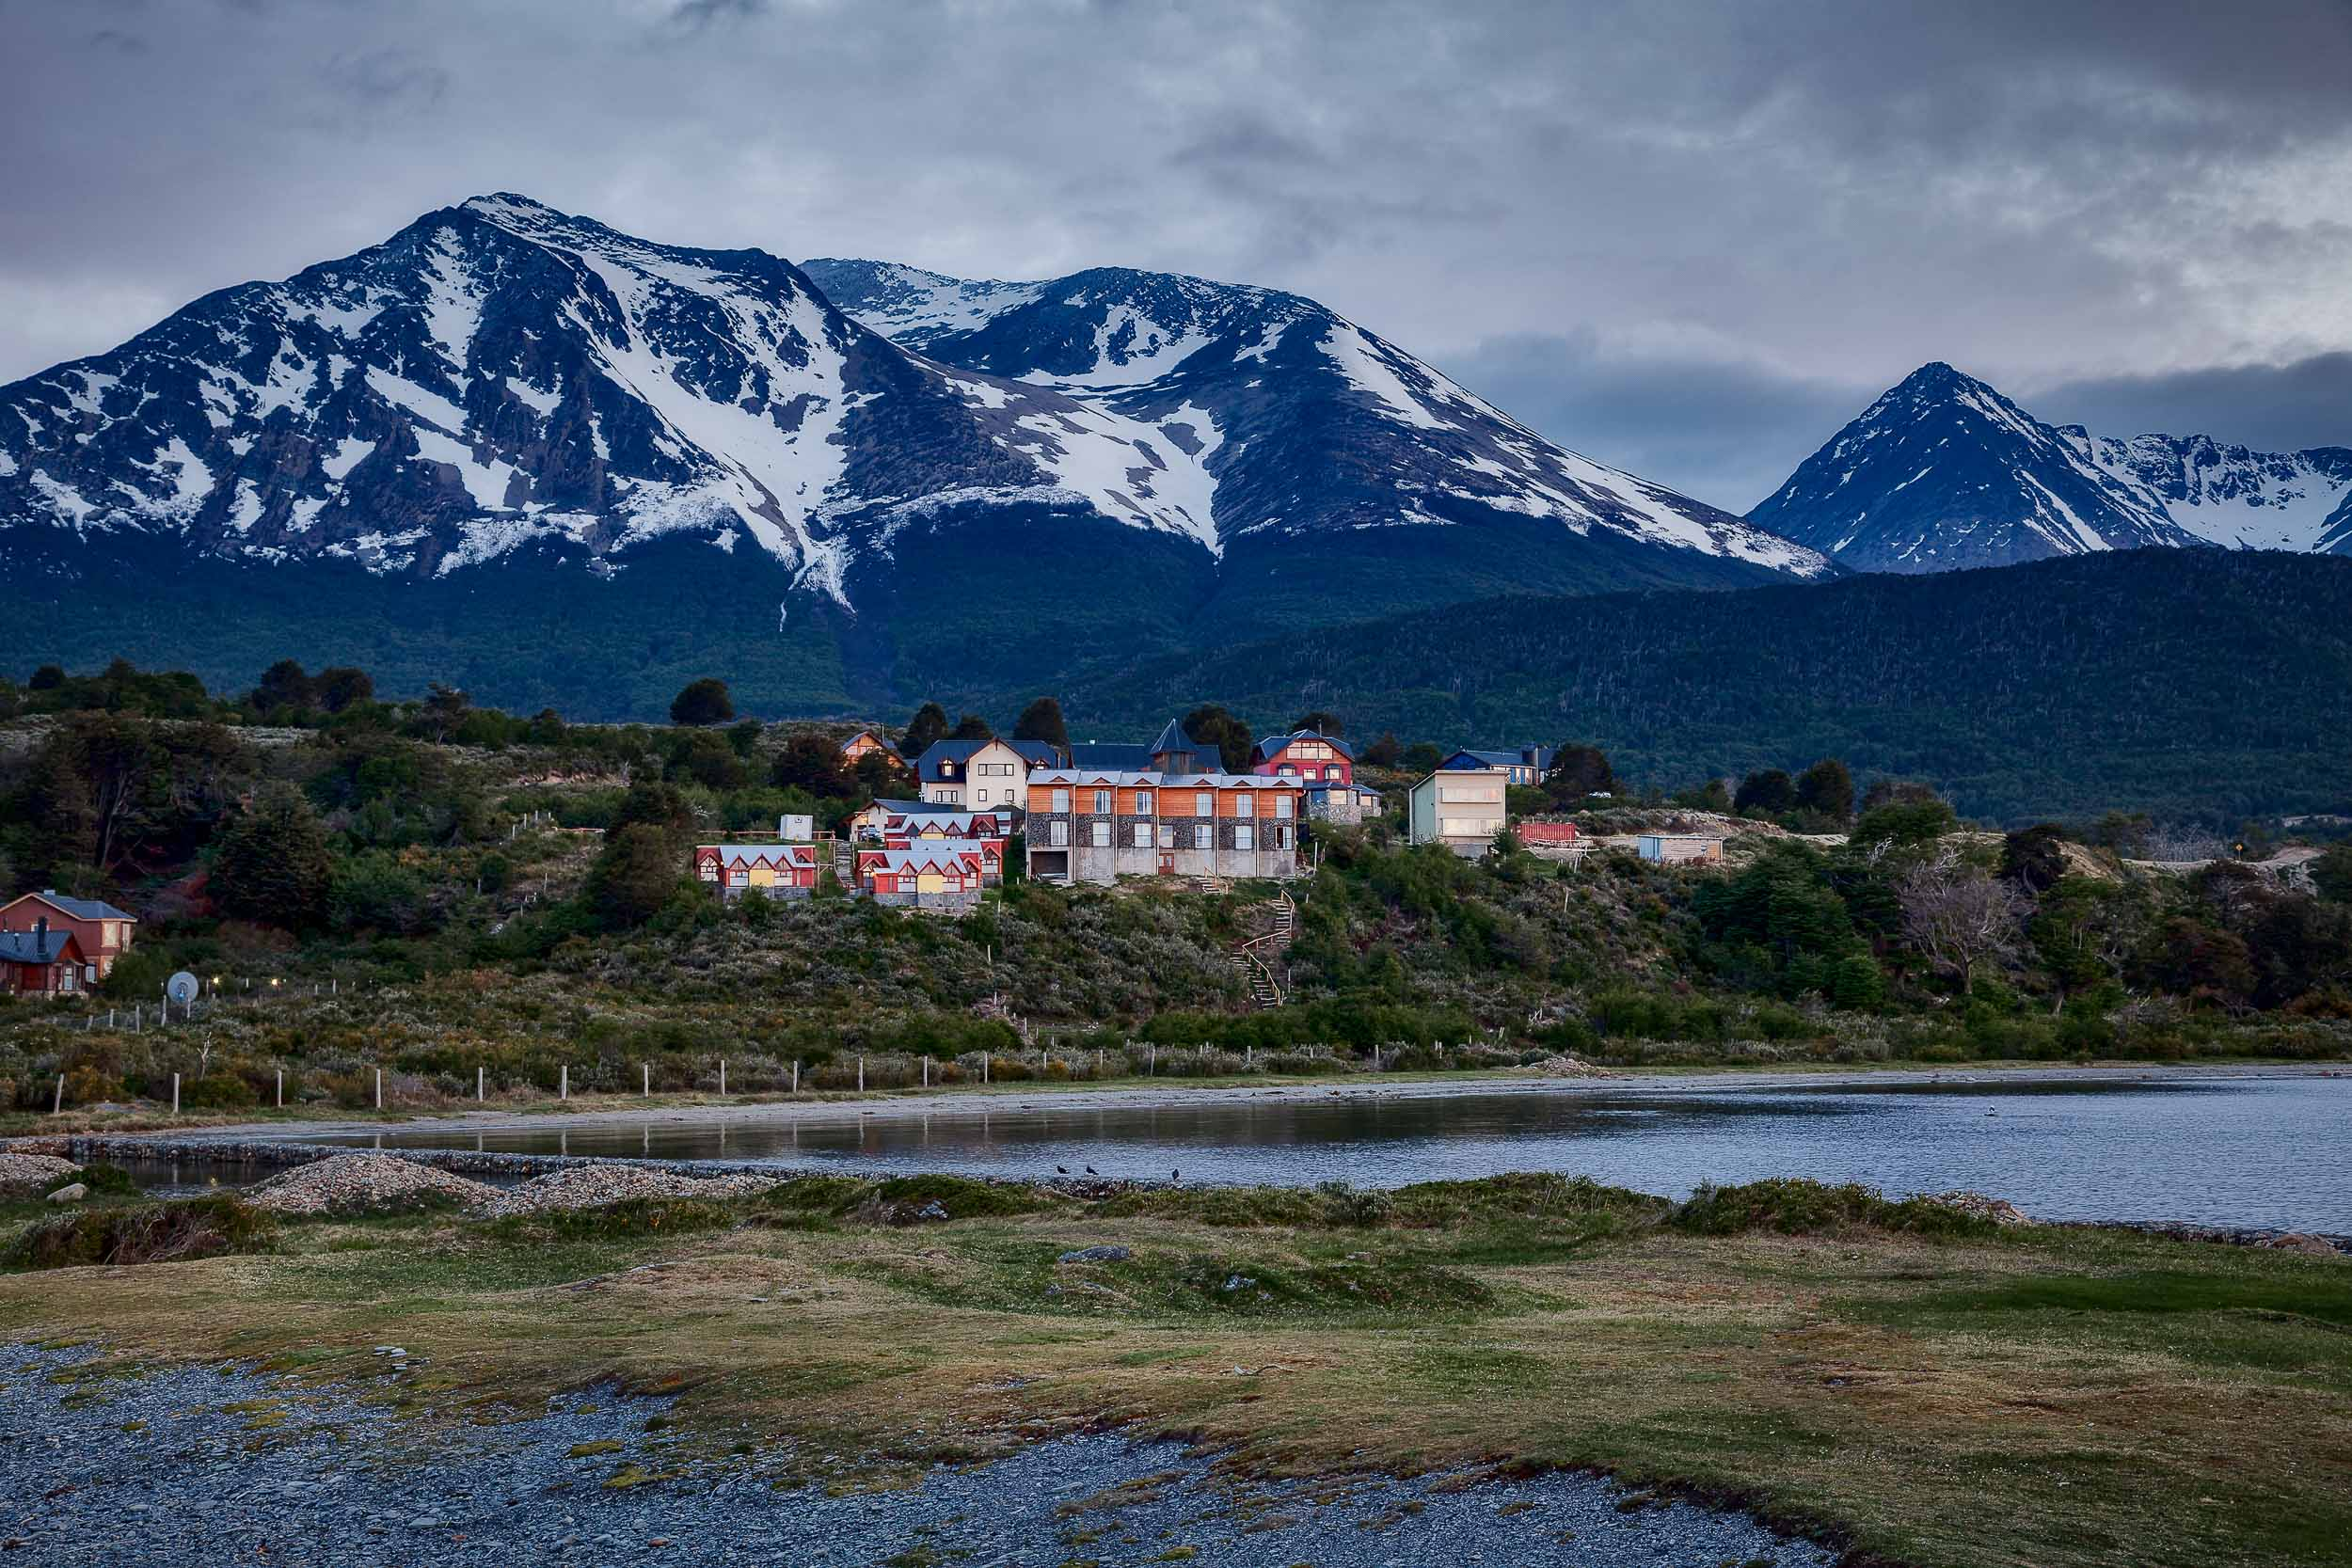 Early morning light at    De la Estancia    on the outskirts of    Ushuaia, Argentina   .